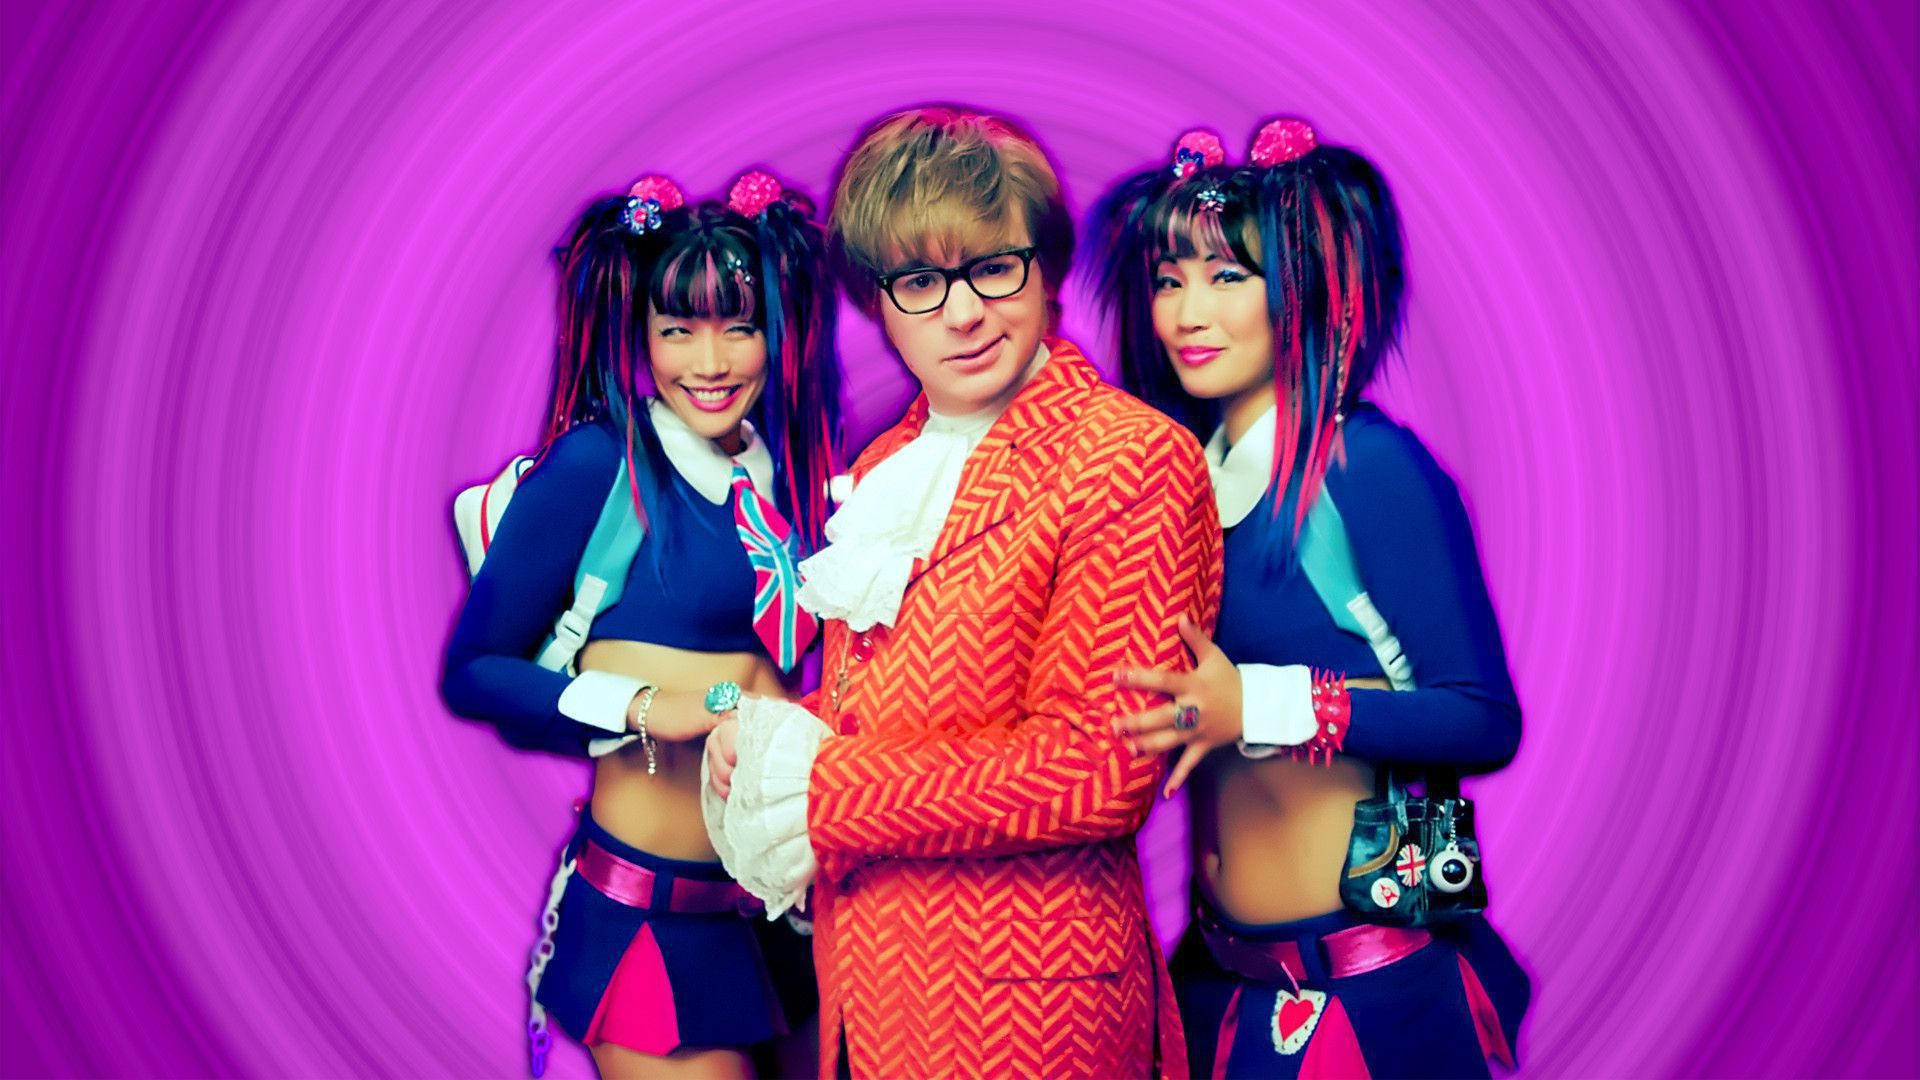 Austin Powers Widescreen